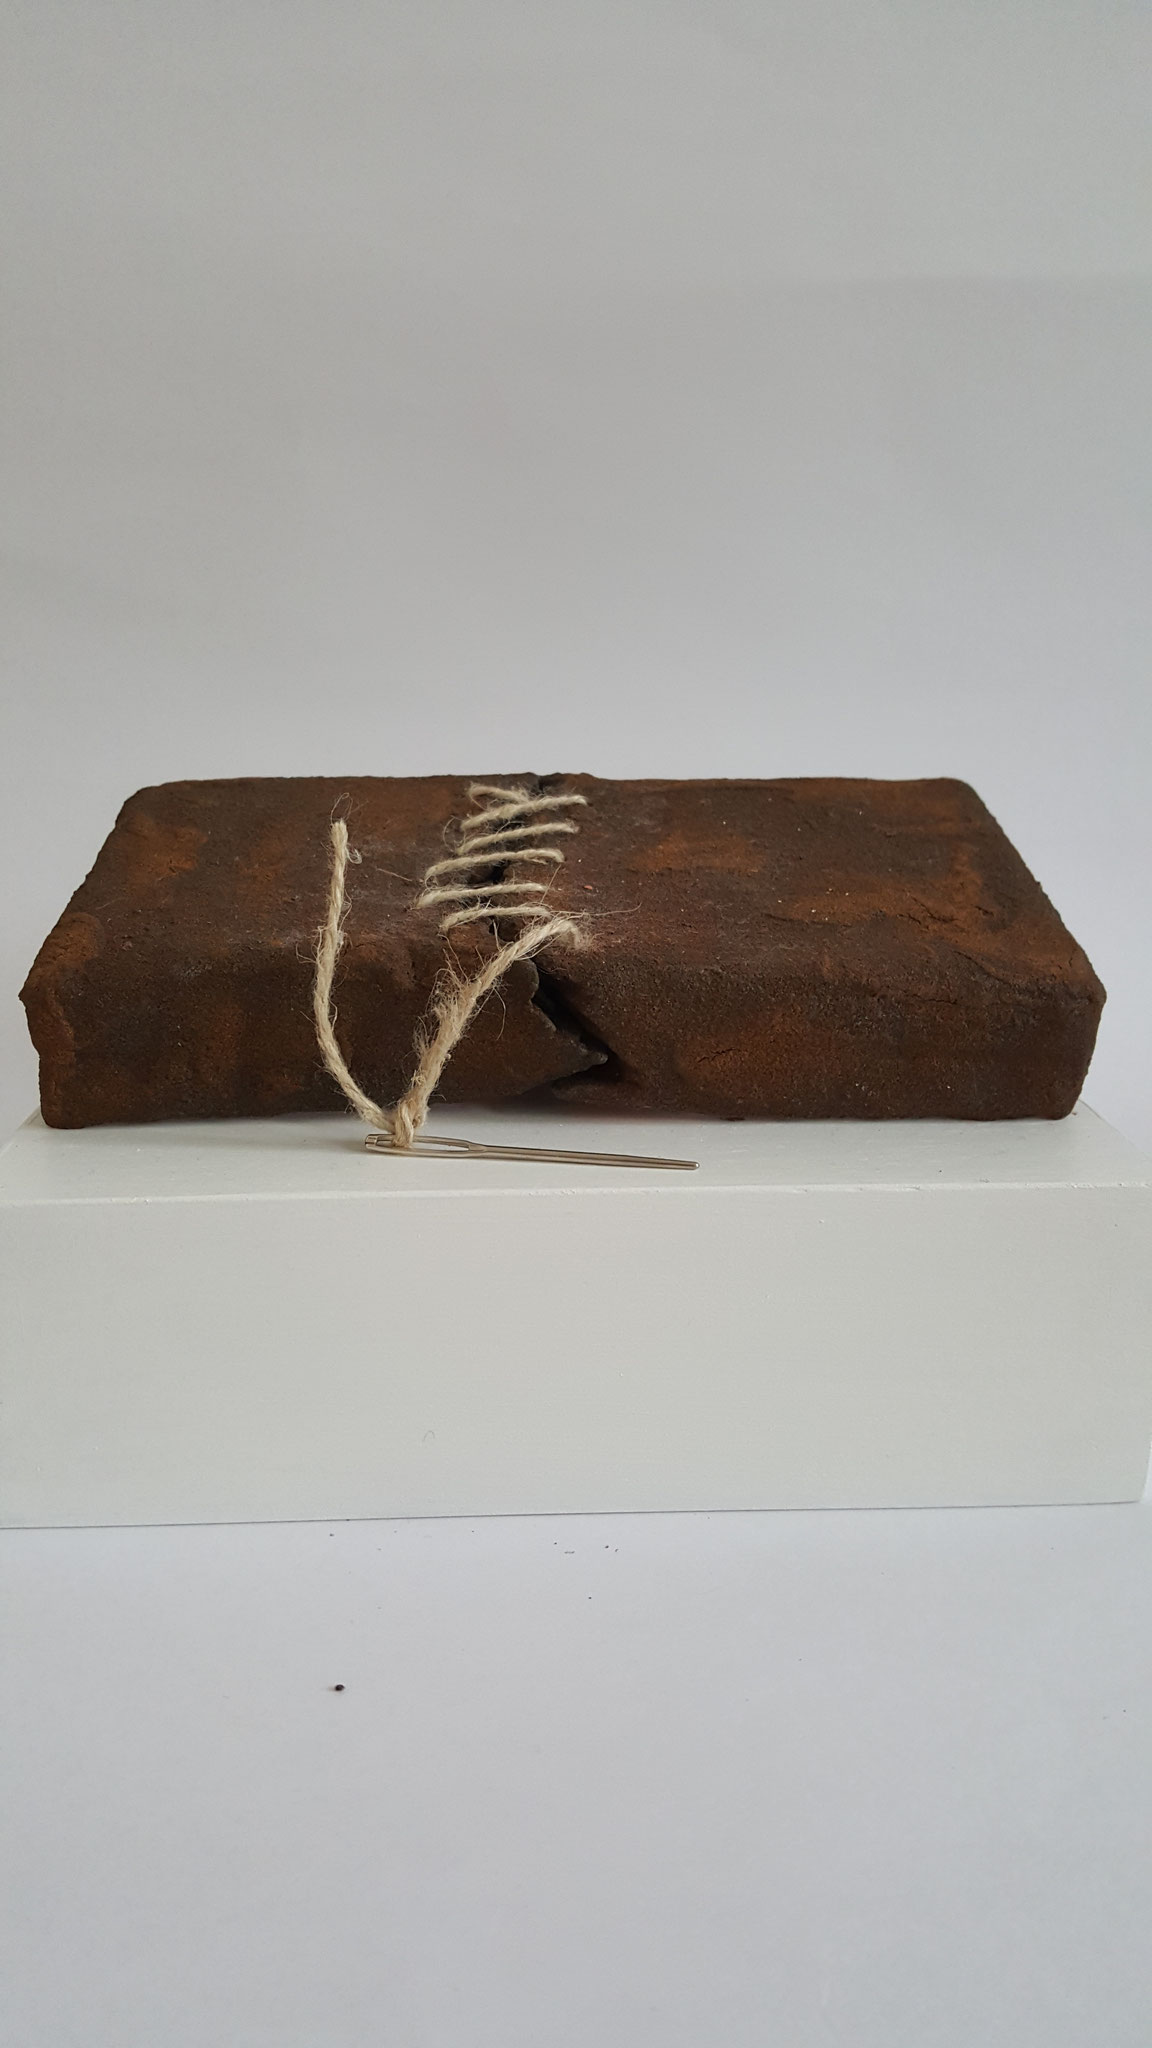 Wounds heal, 2018, 2,5 x 19 x 10 cm, Object